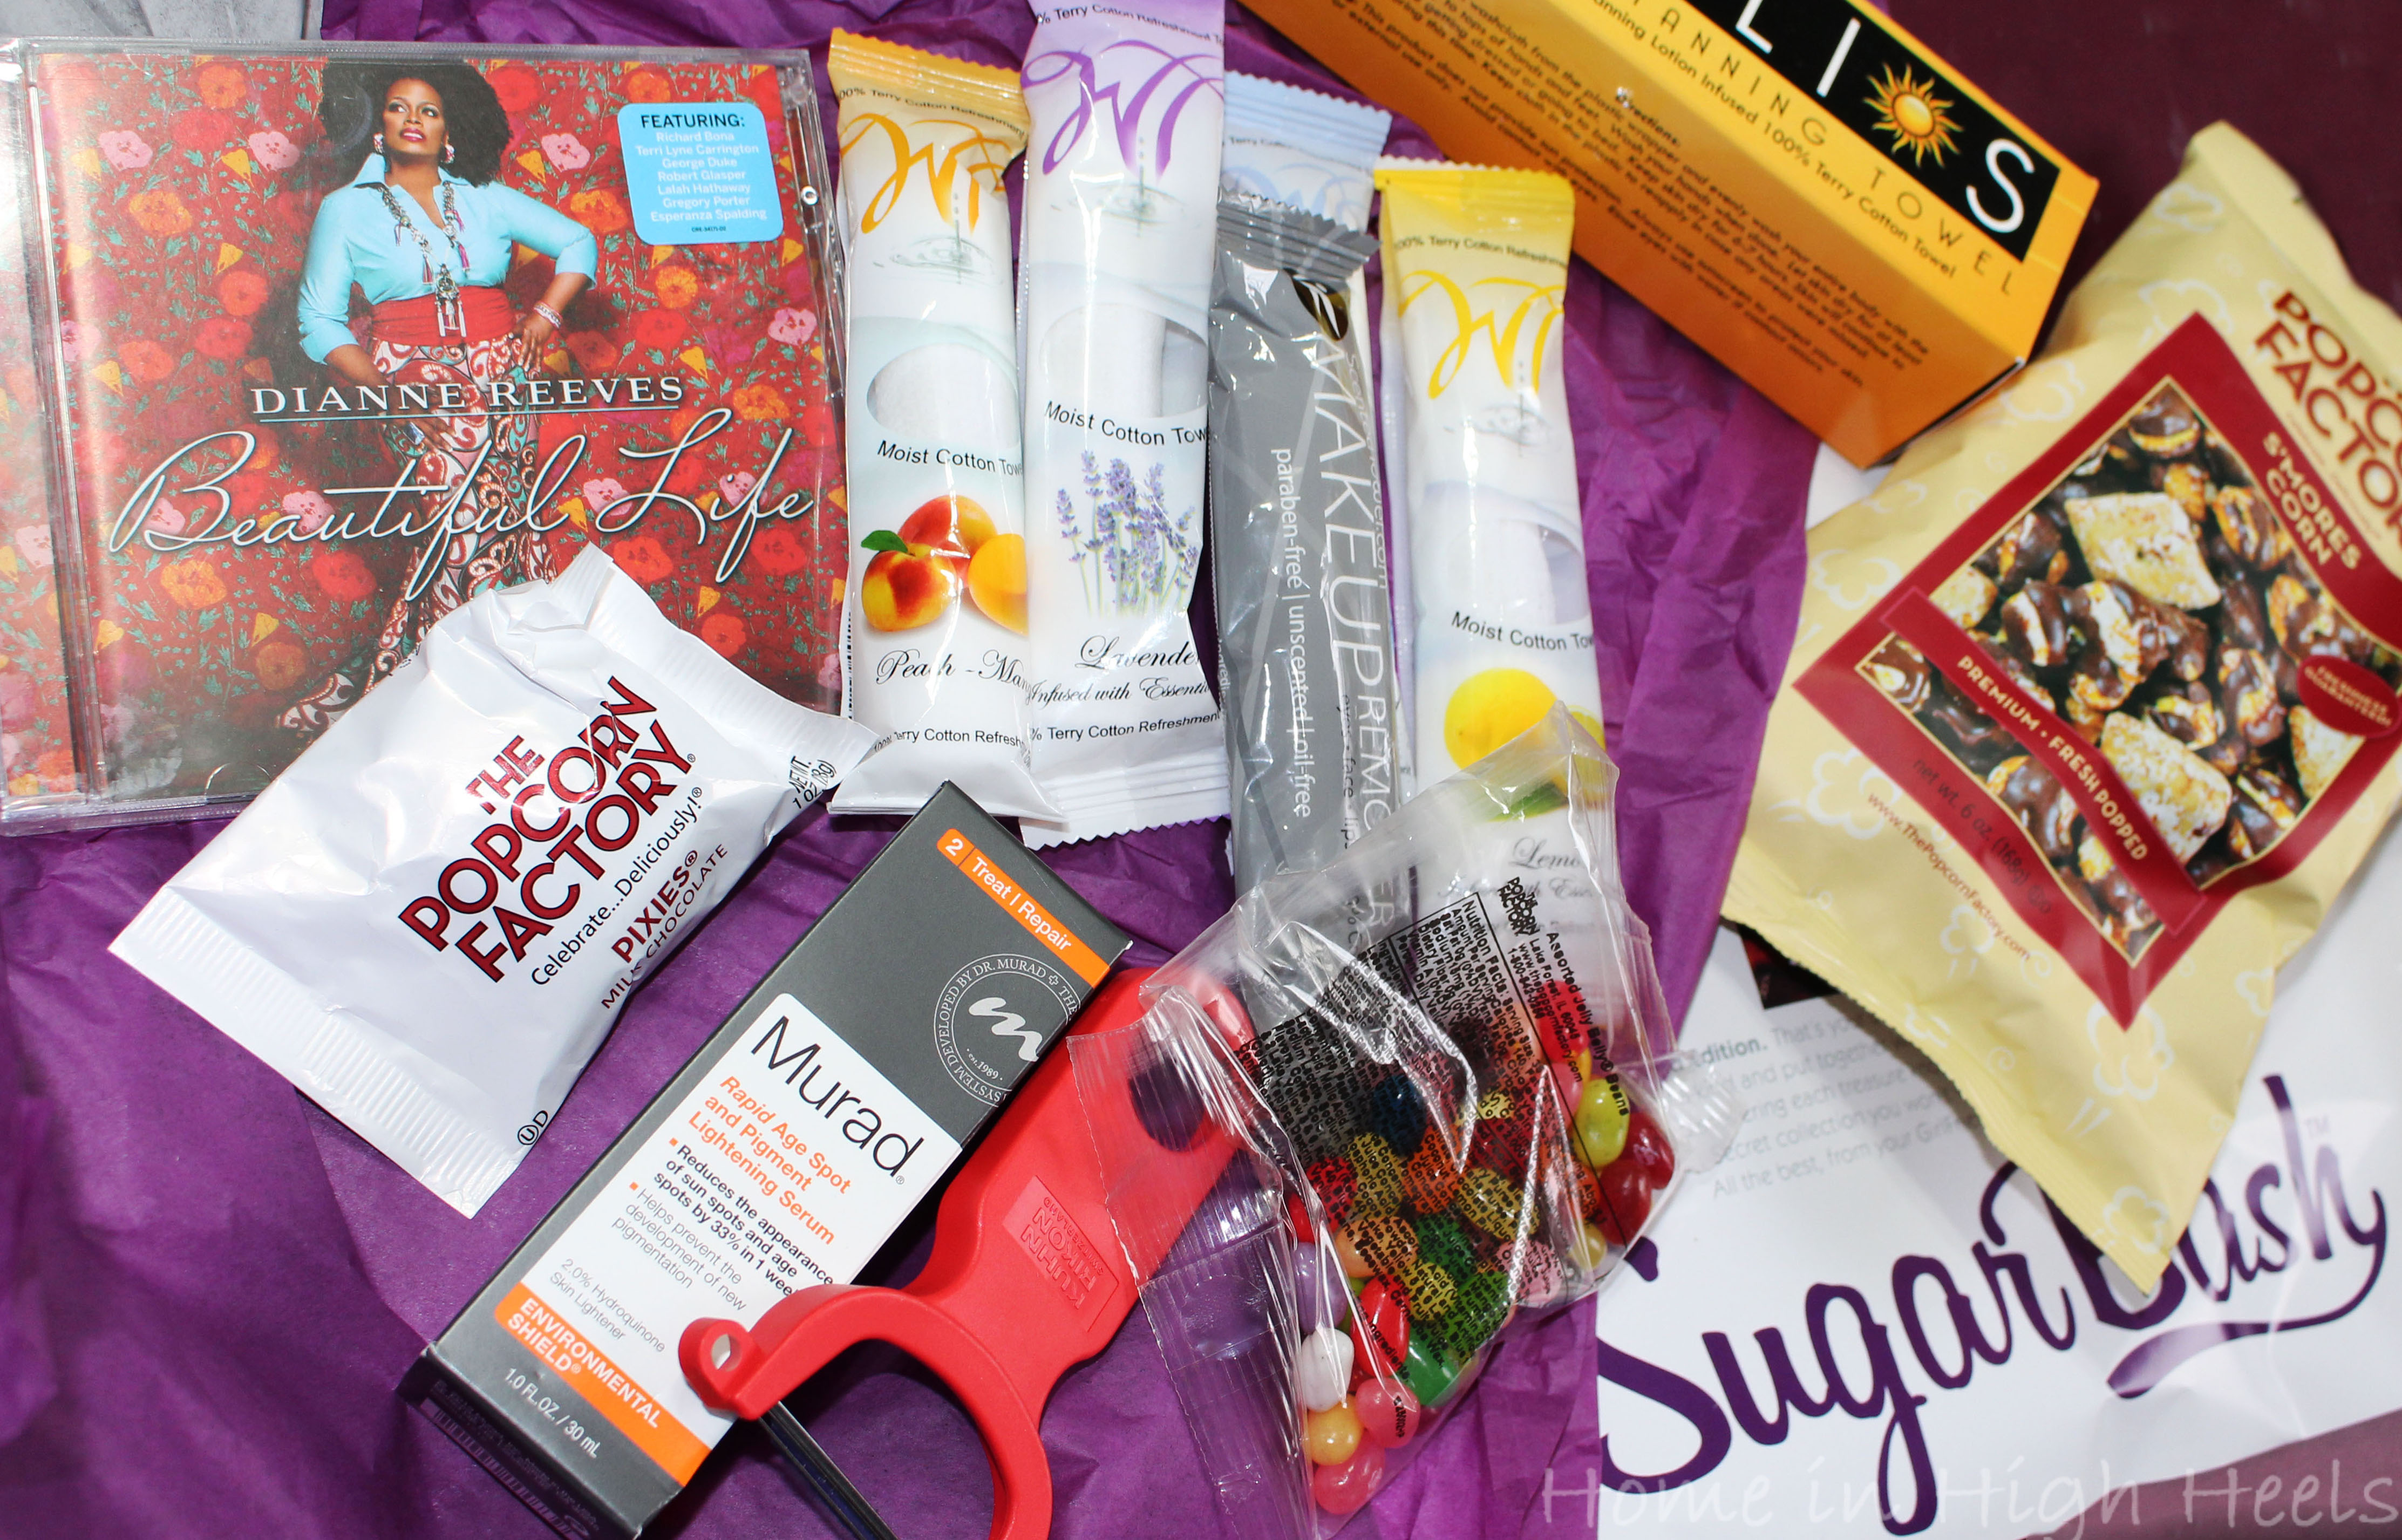 Sugar Bash- The New Must-Have Subscription Box featuring full-sized products from brands like Murad, Rocky Mountain Chocolate, Helios, & more! on Home in High Heels